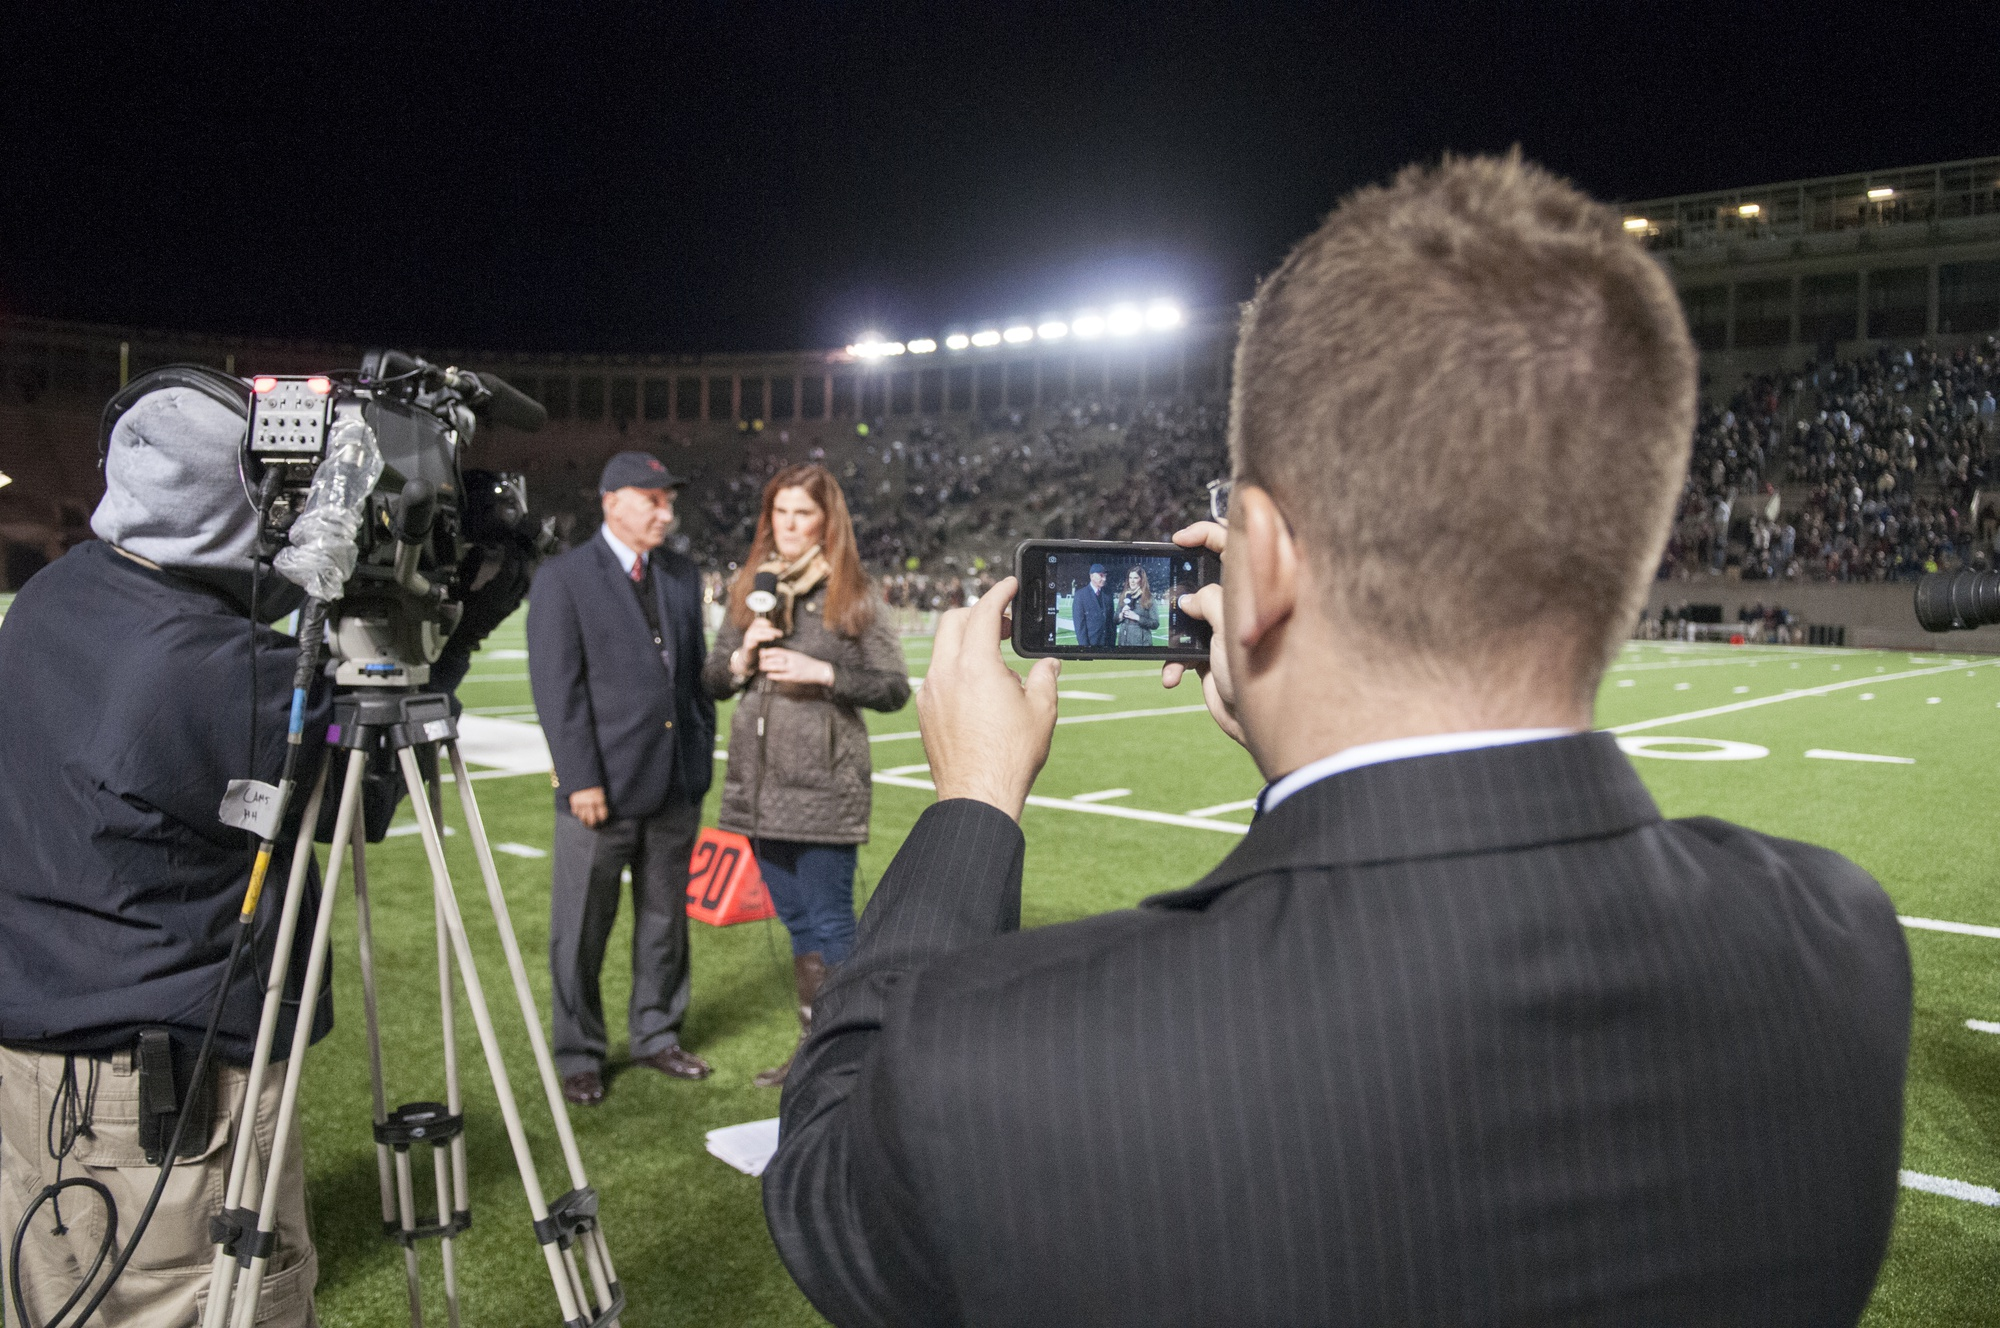 Tim Williamson, right, films on his phone while a Fox College Sports reporter interviews Director of Athletics Bob Scalise during halftime of the Harvard-Brown football game in late September.